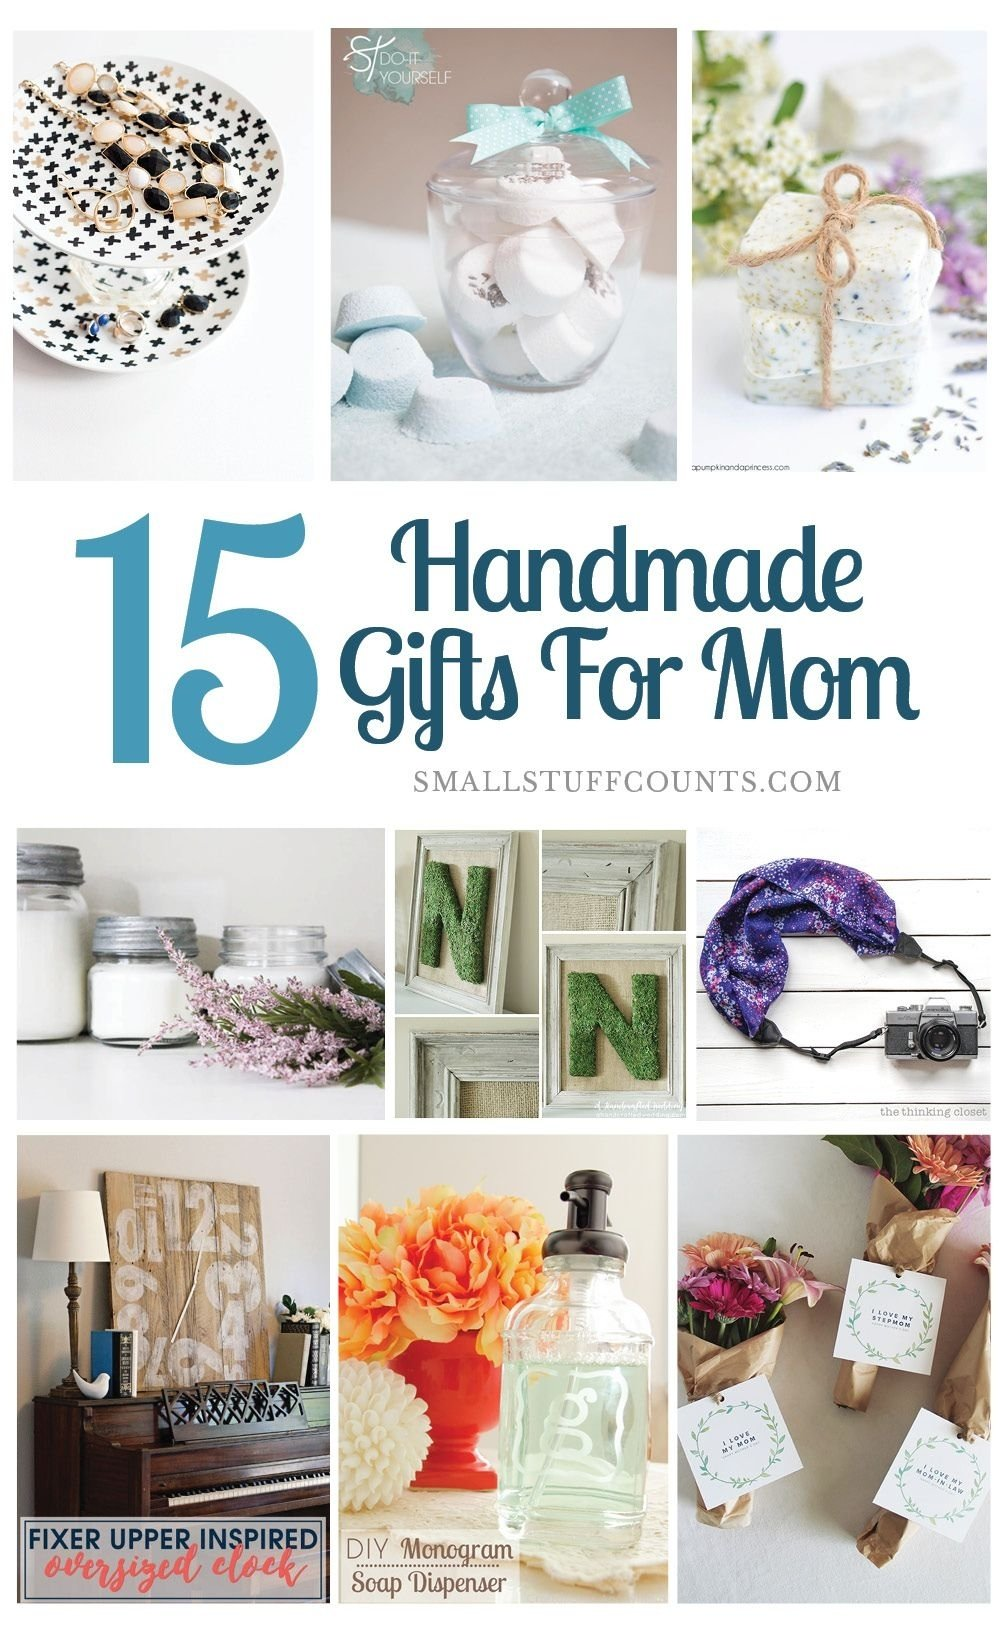 10 fashionable homemade gift ideas for mom